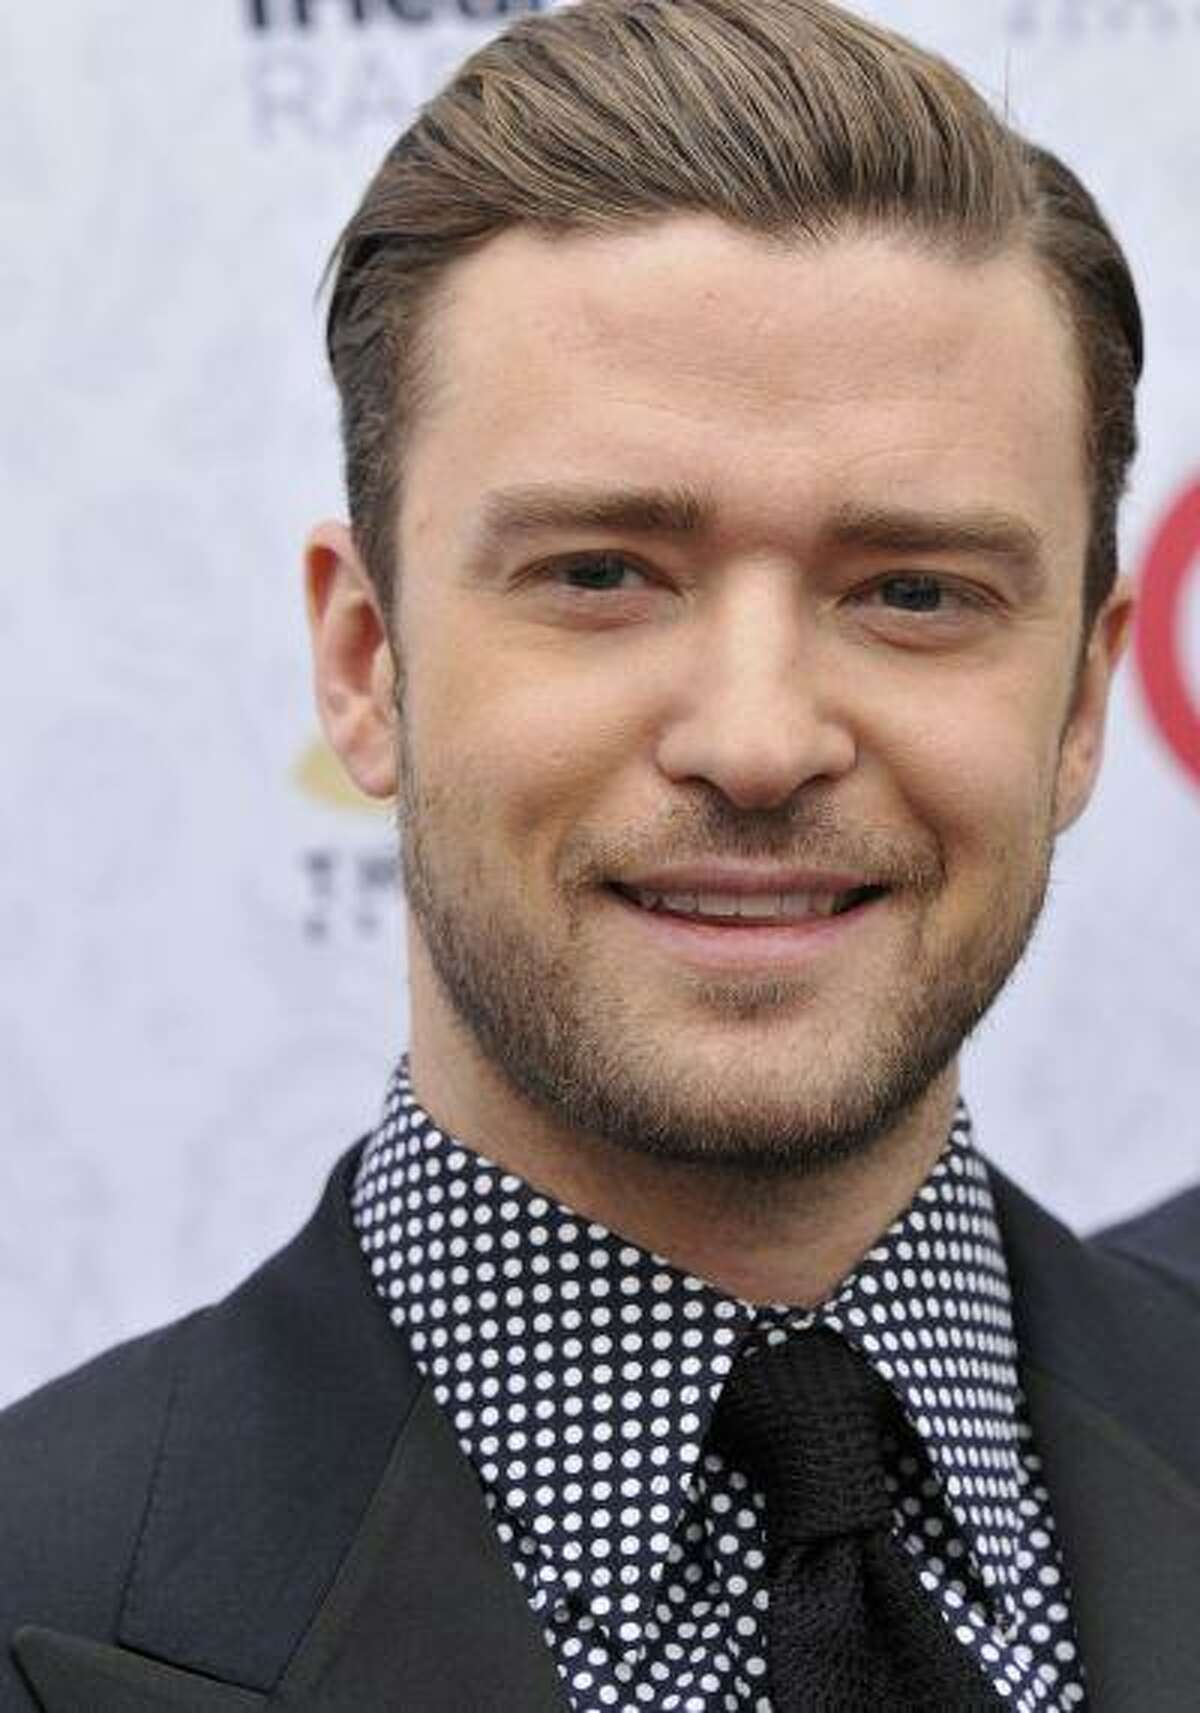 """Singer Justin Timberlake arrives at his iHeartRadio """"The 20/20 Experience"""" album release party at the El Rey Theatre on Monday, March 18, 2013 in Los Angeles. (Photo by Dan Steinberg/Invision/AP)"""